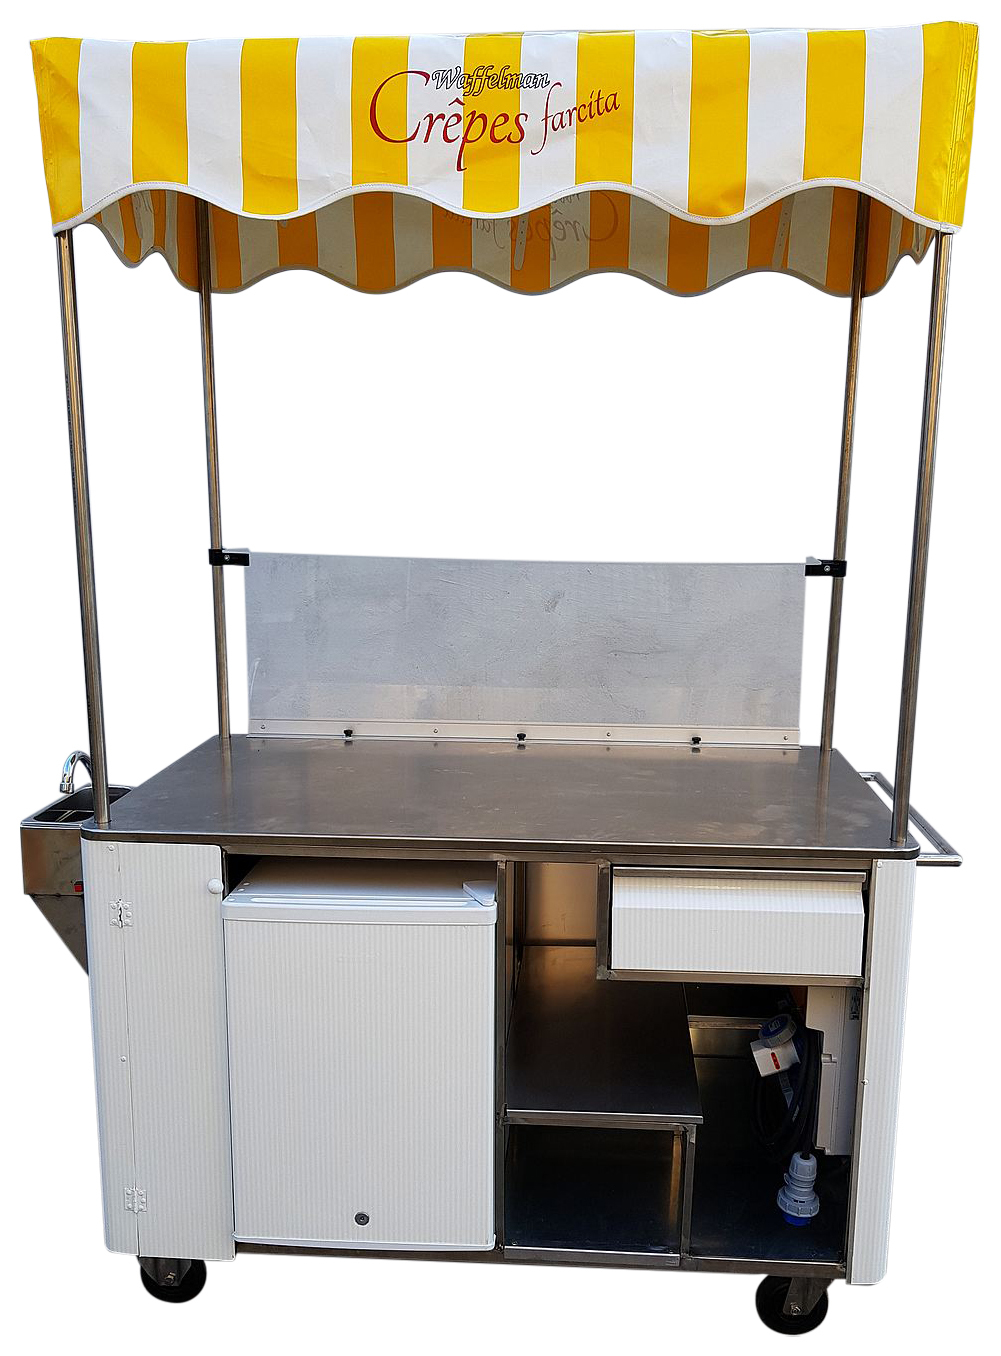 CARRELLO_A_SPINTA_PUSH_CART_per_CREPES_e_WAFFEL_01